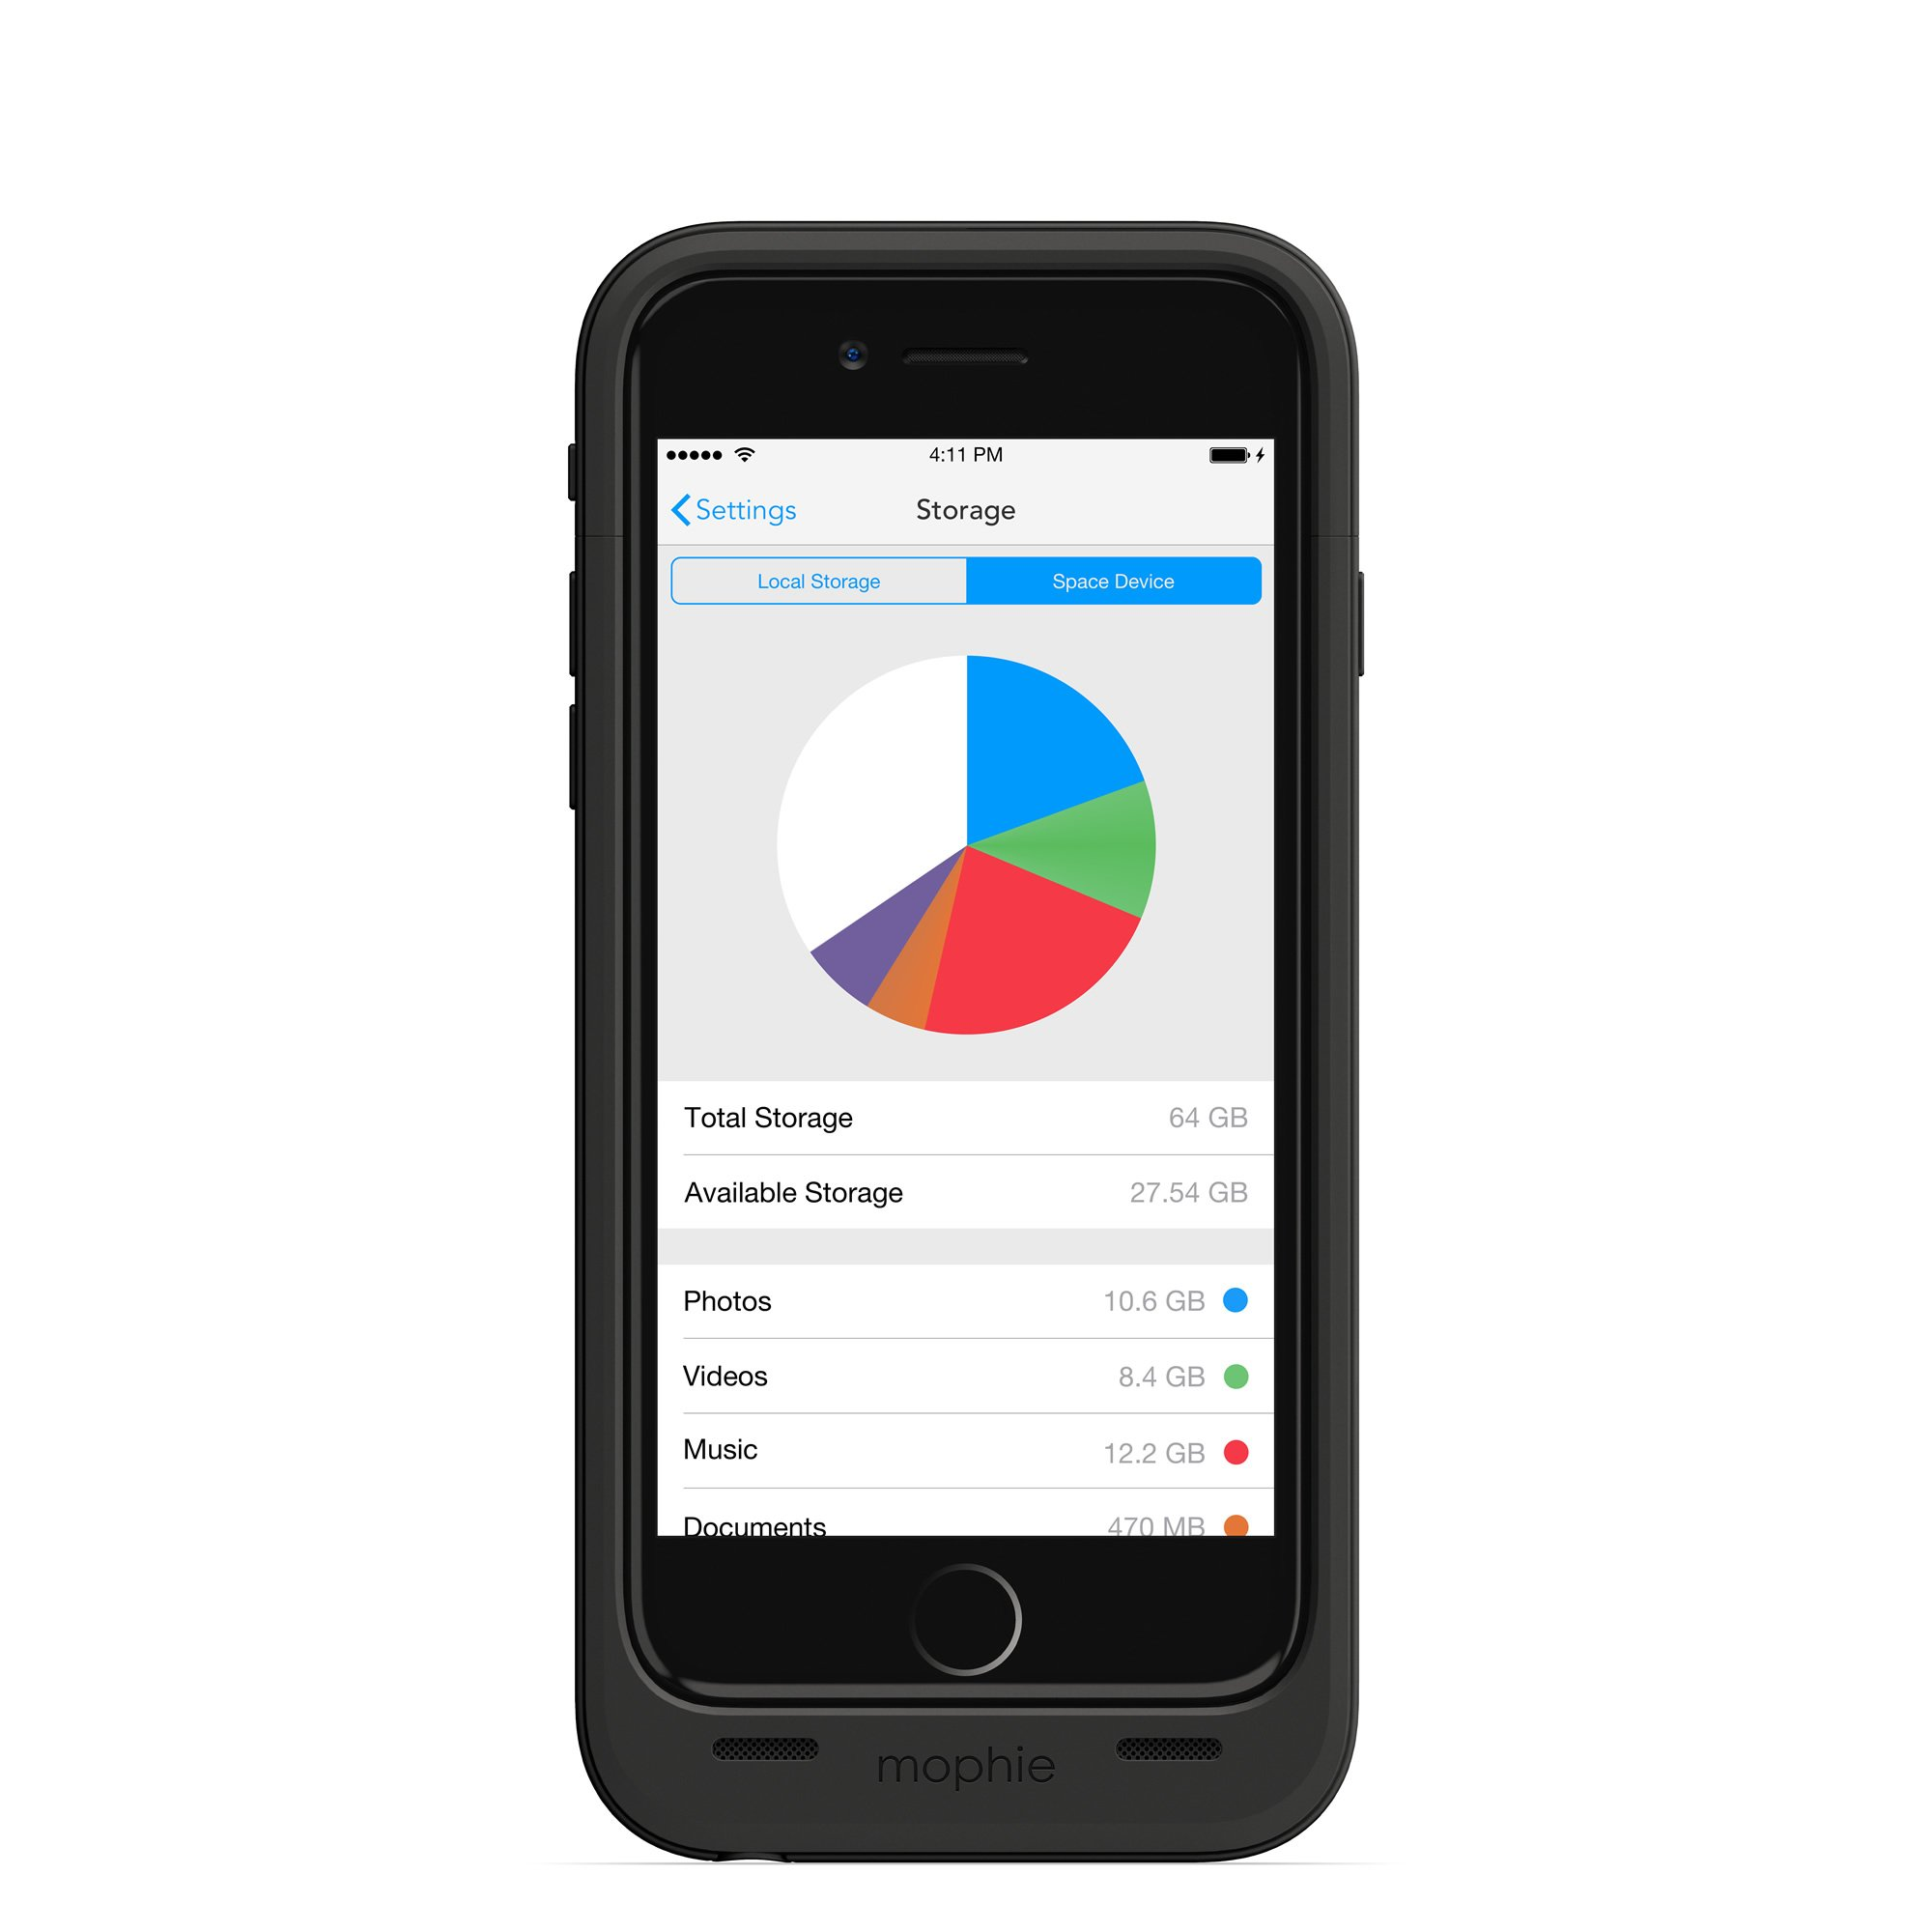 mophie spacepack battery case with Built-In 64GB storage for iPhone 6/6s (3,300mAh) - Black by mophie